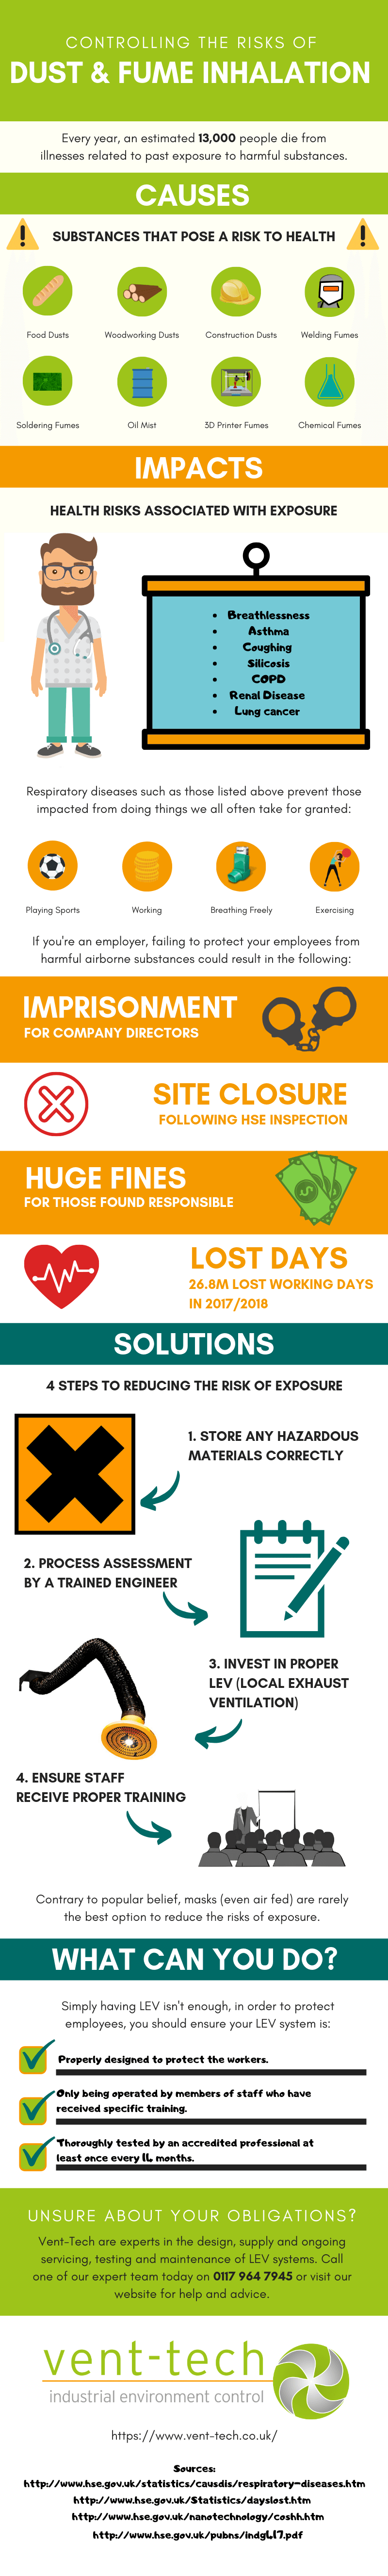 Infographic on controlling the risks associated with dust and fume inhalation